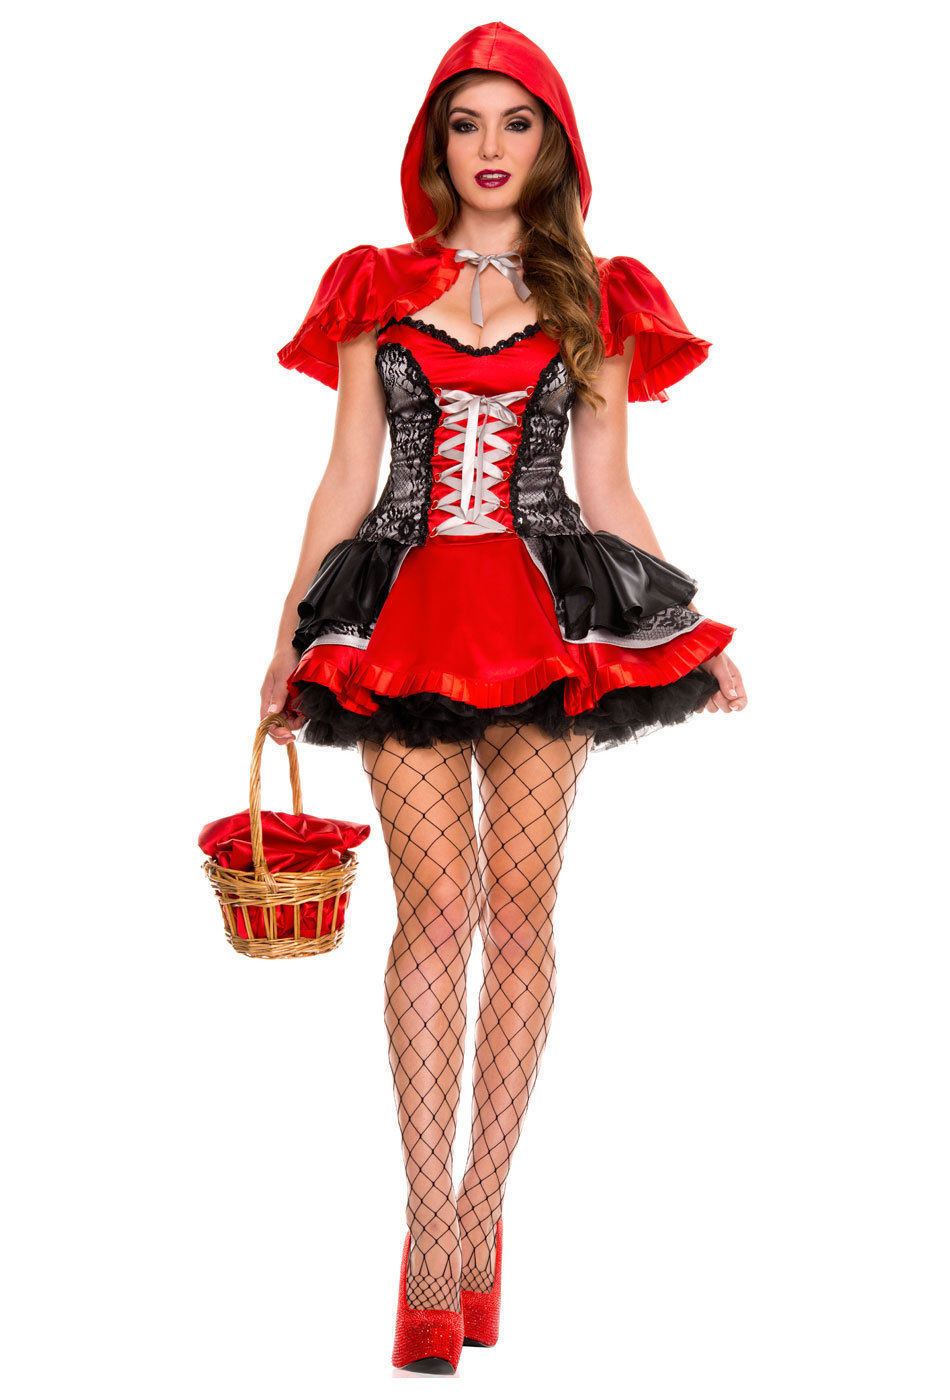 Dress Up Outfits For Women